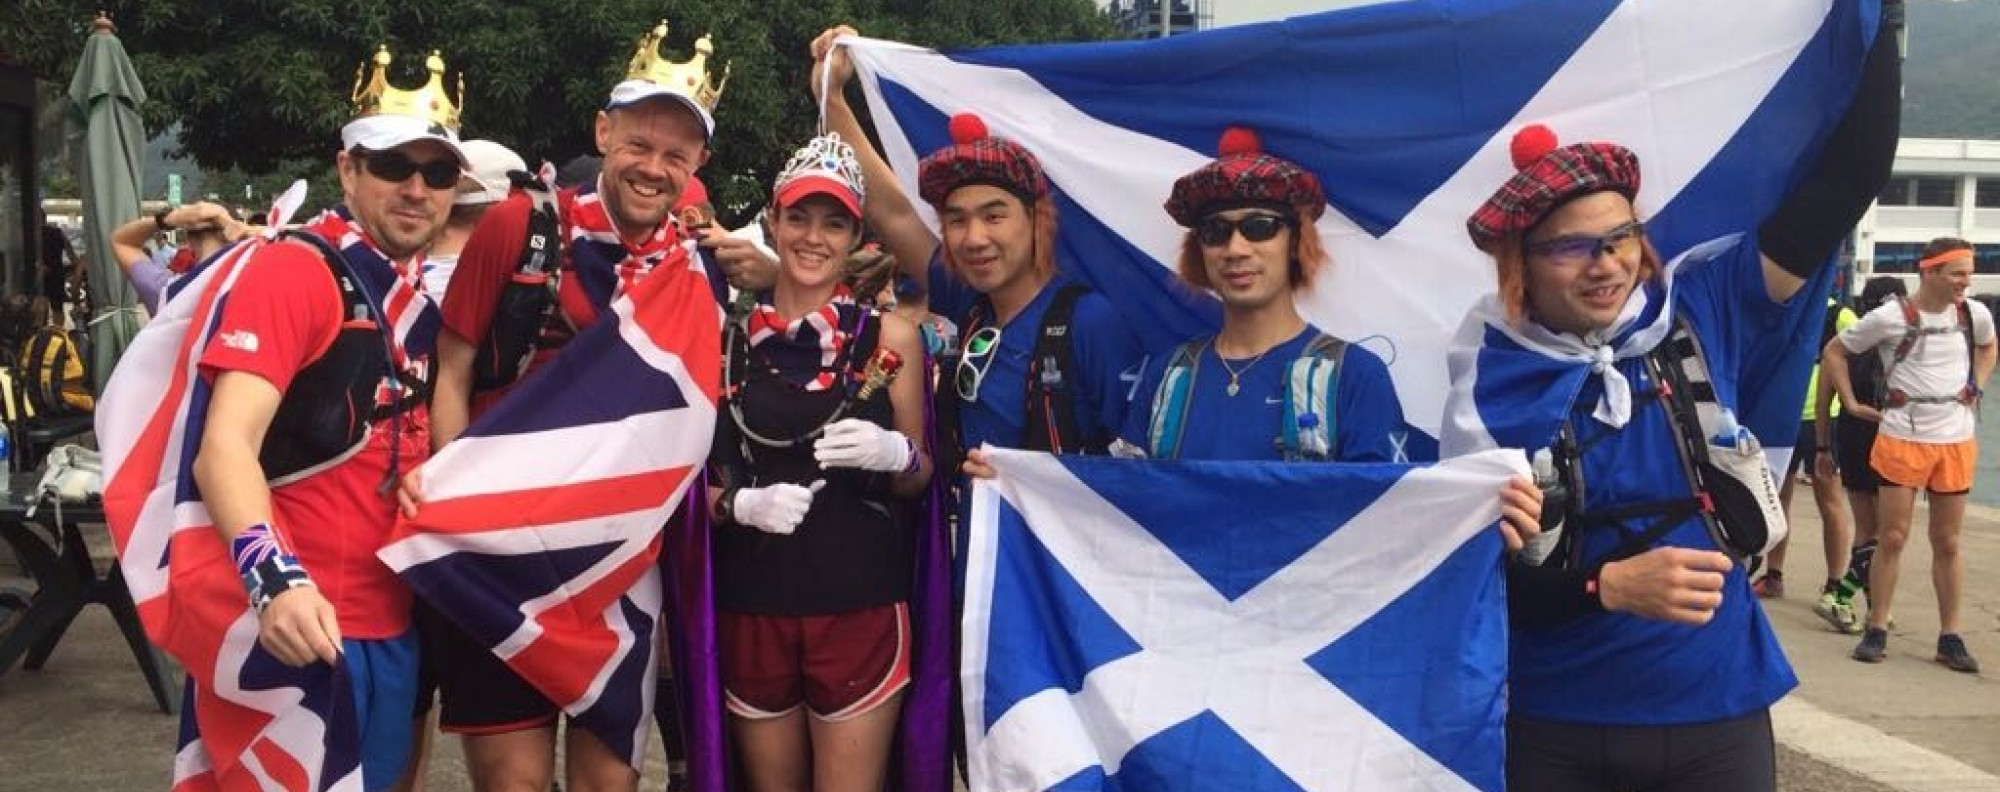 An unofficial Country of Origin in 2015 saw Scots and Britons run side by side. But when Choi's team dressed as London Beefeaters at the first official race in 2016, it was game on. Photos: Handout